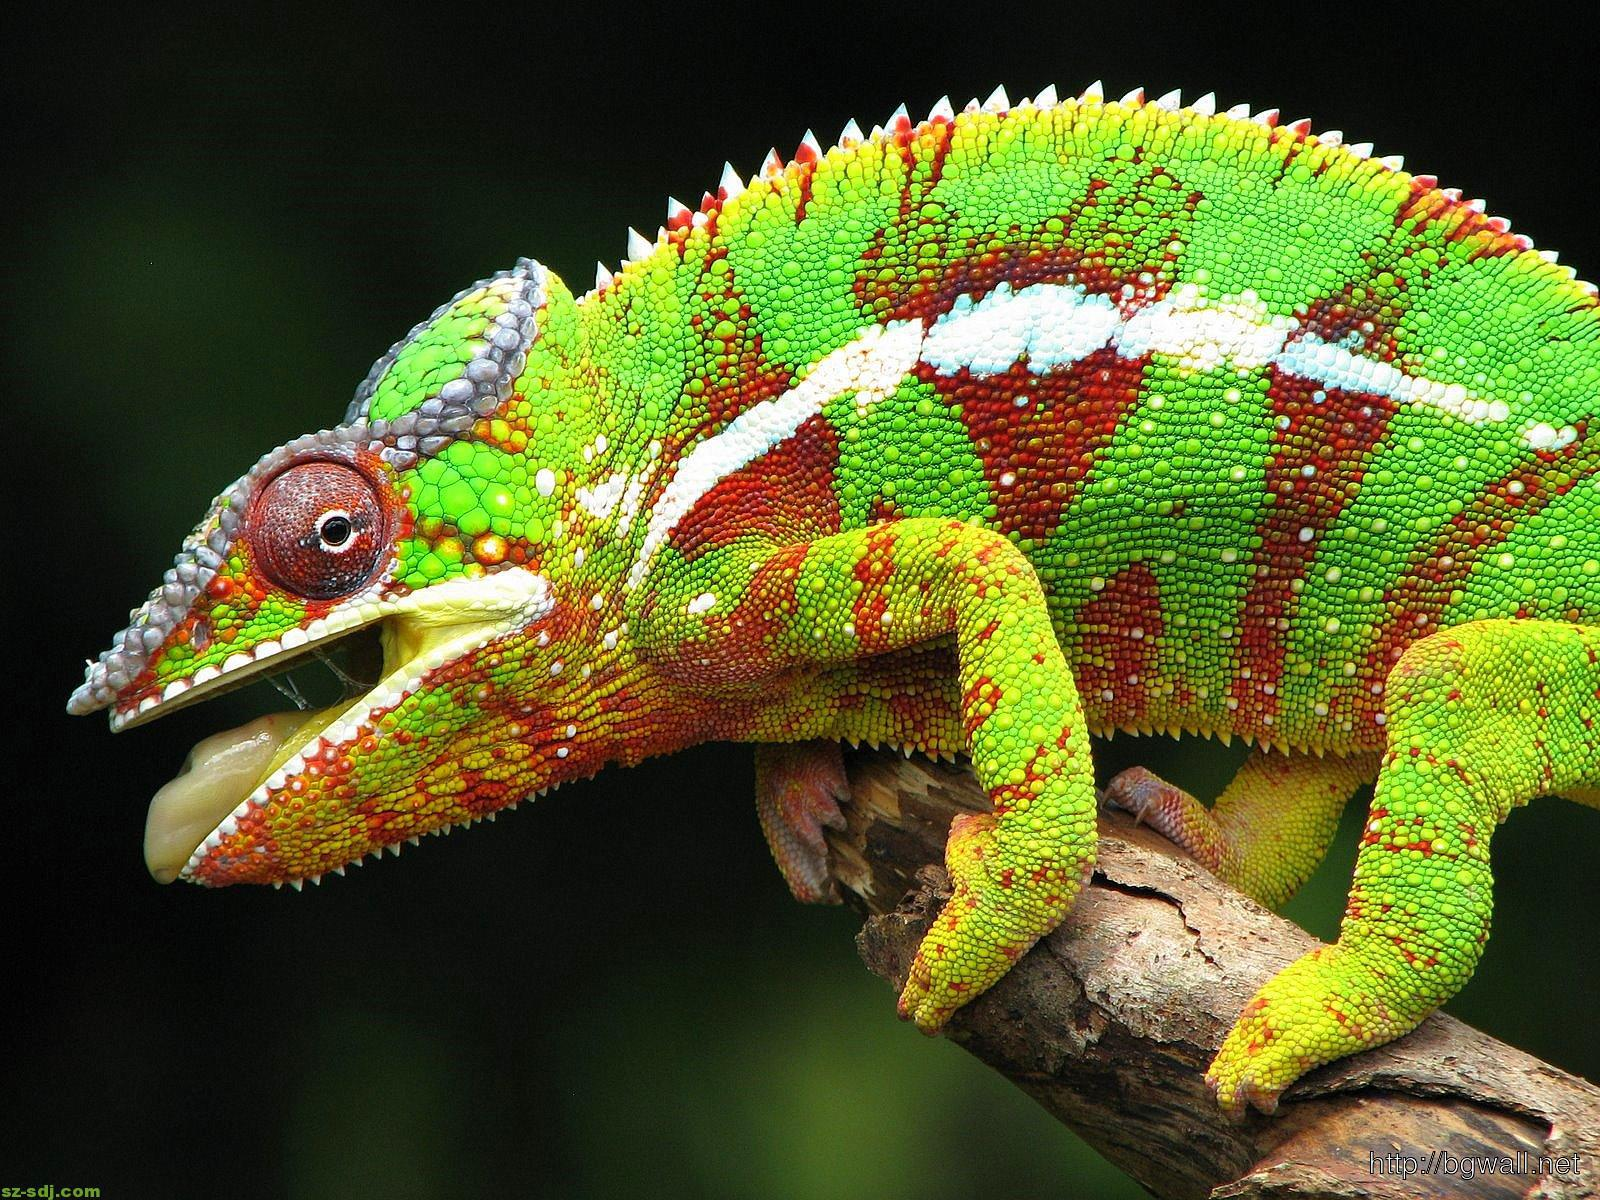 cameleon-animal-wallpaper-image